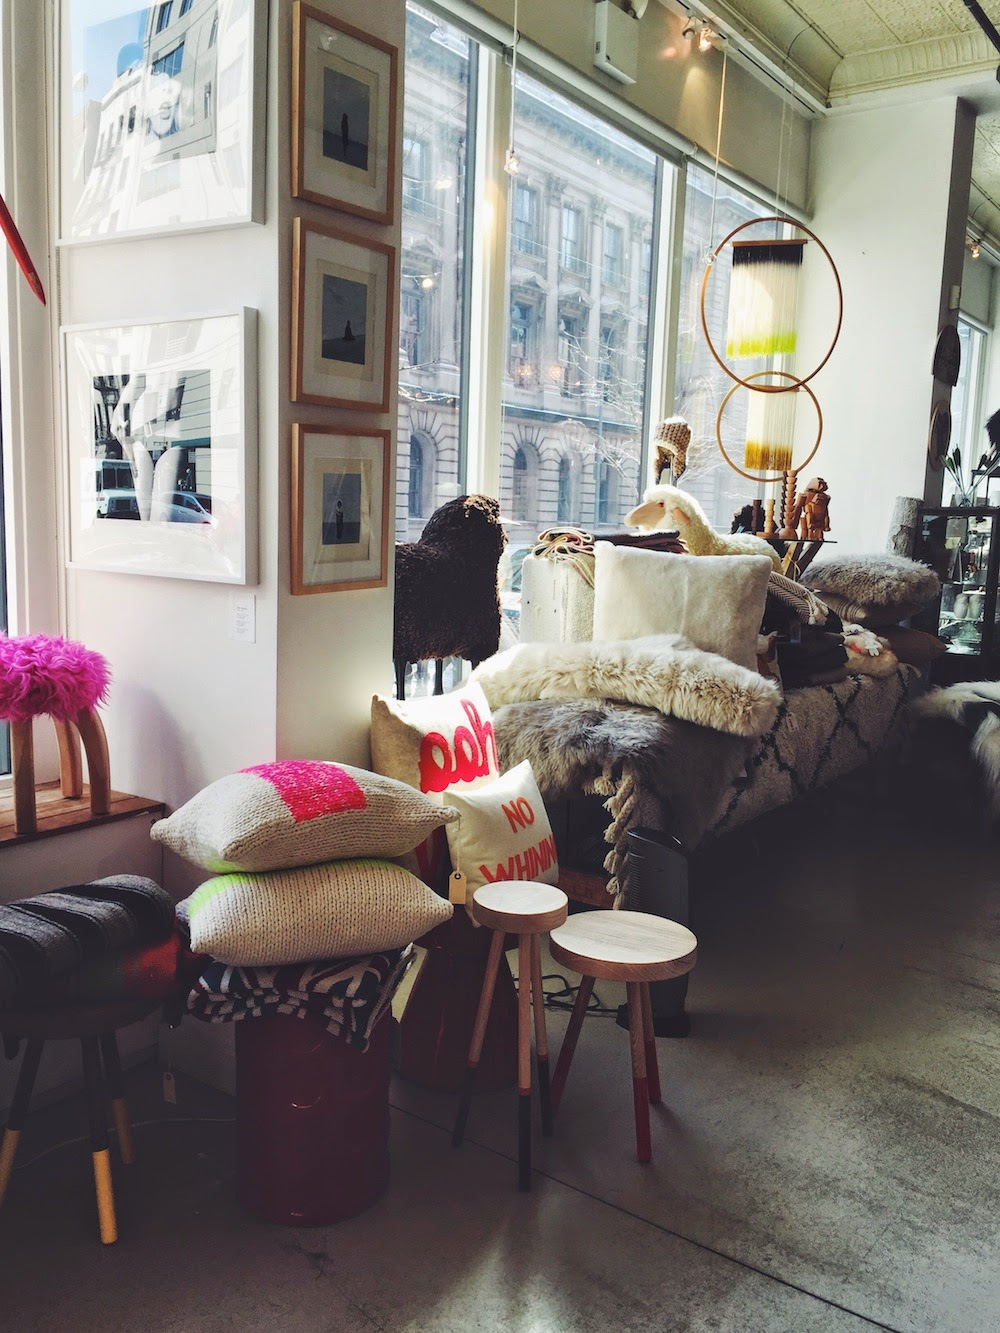 Home Decor Inspiration If I Save Up Enough There Are Some Pieces Would Love To Invest In And Cherish For As Long Can